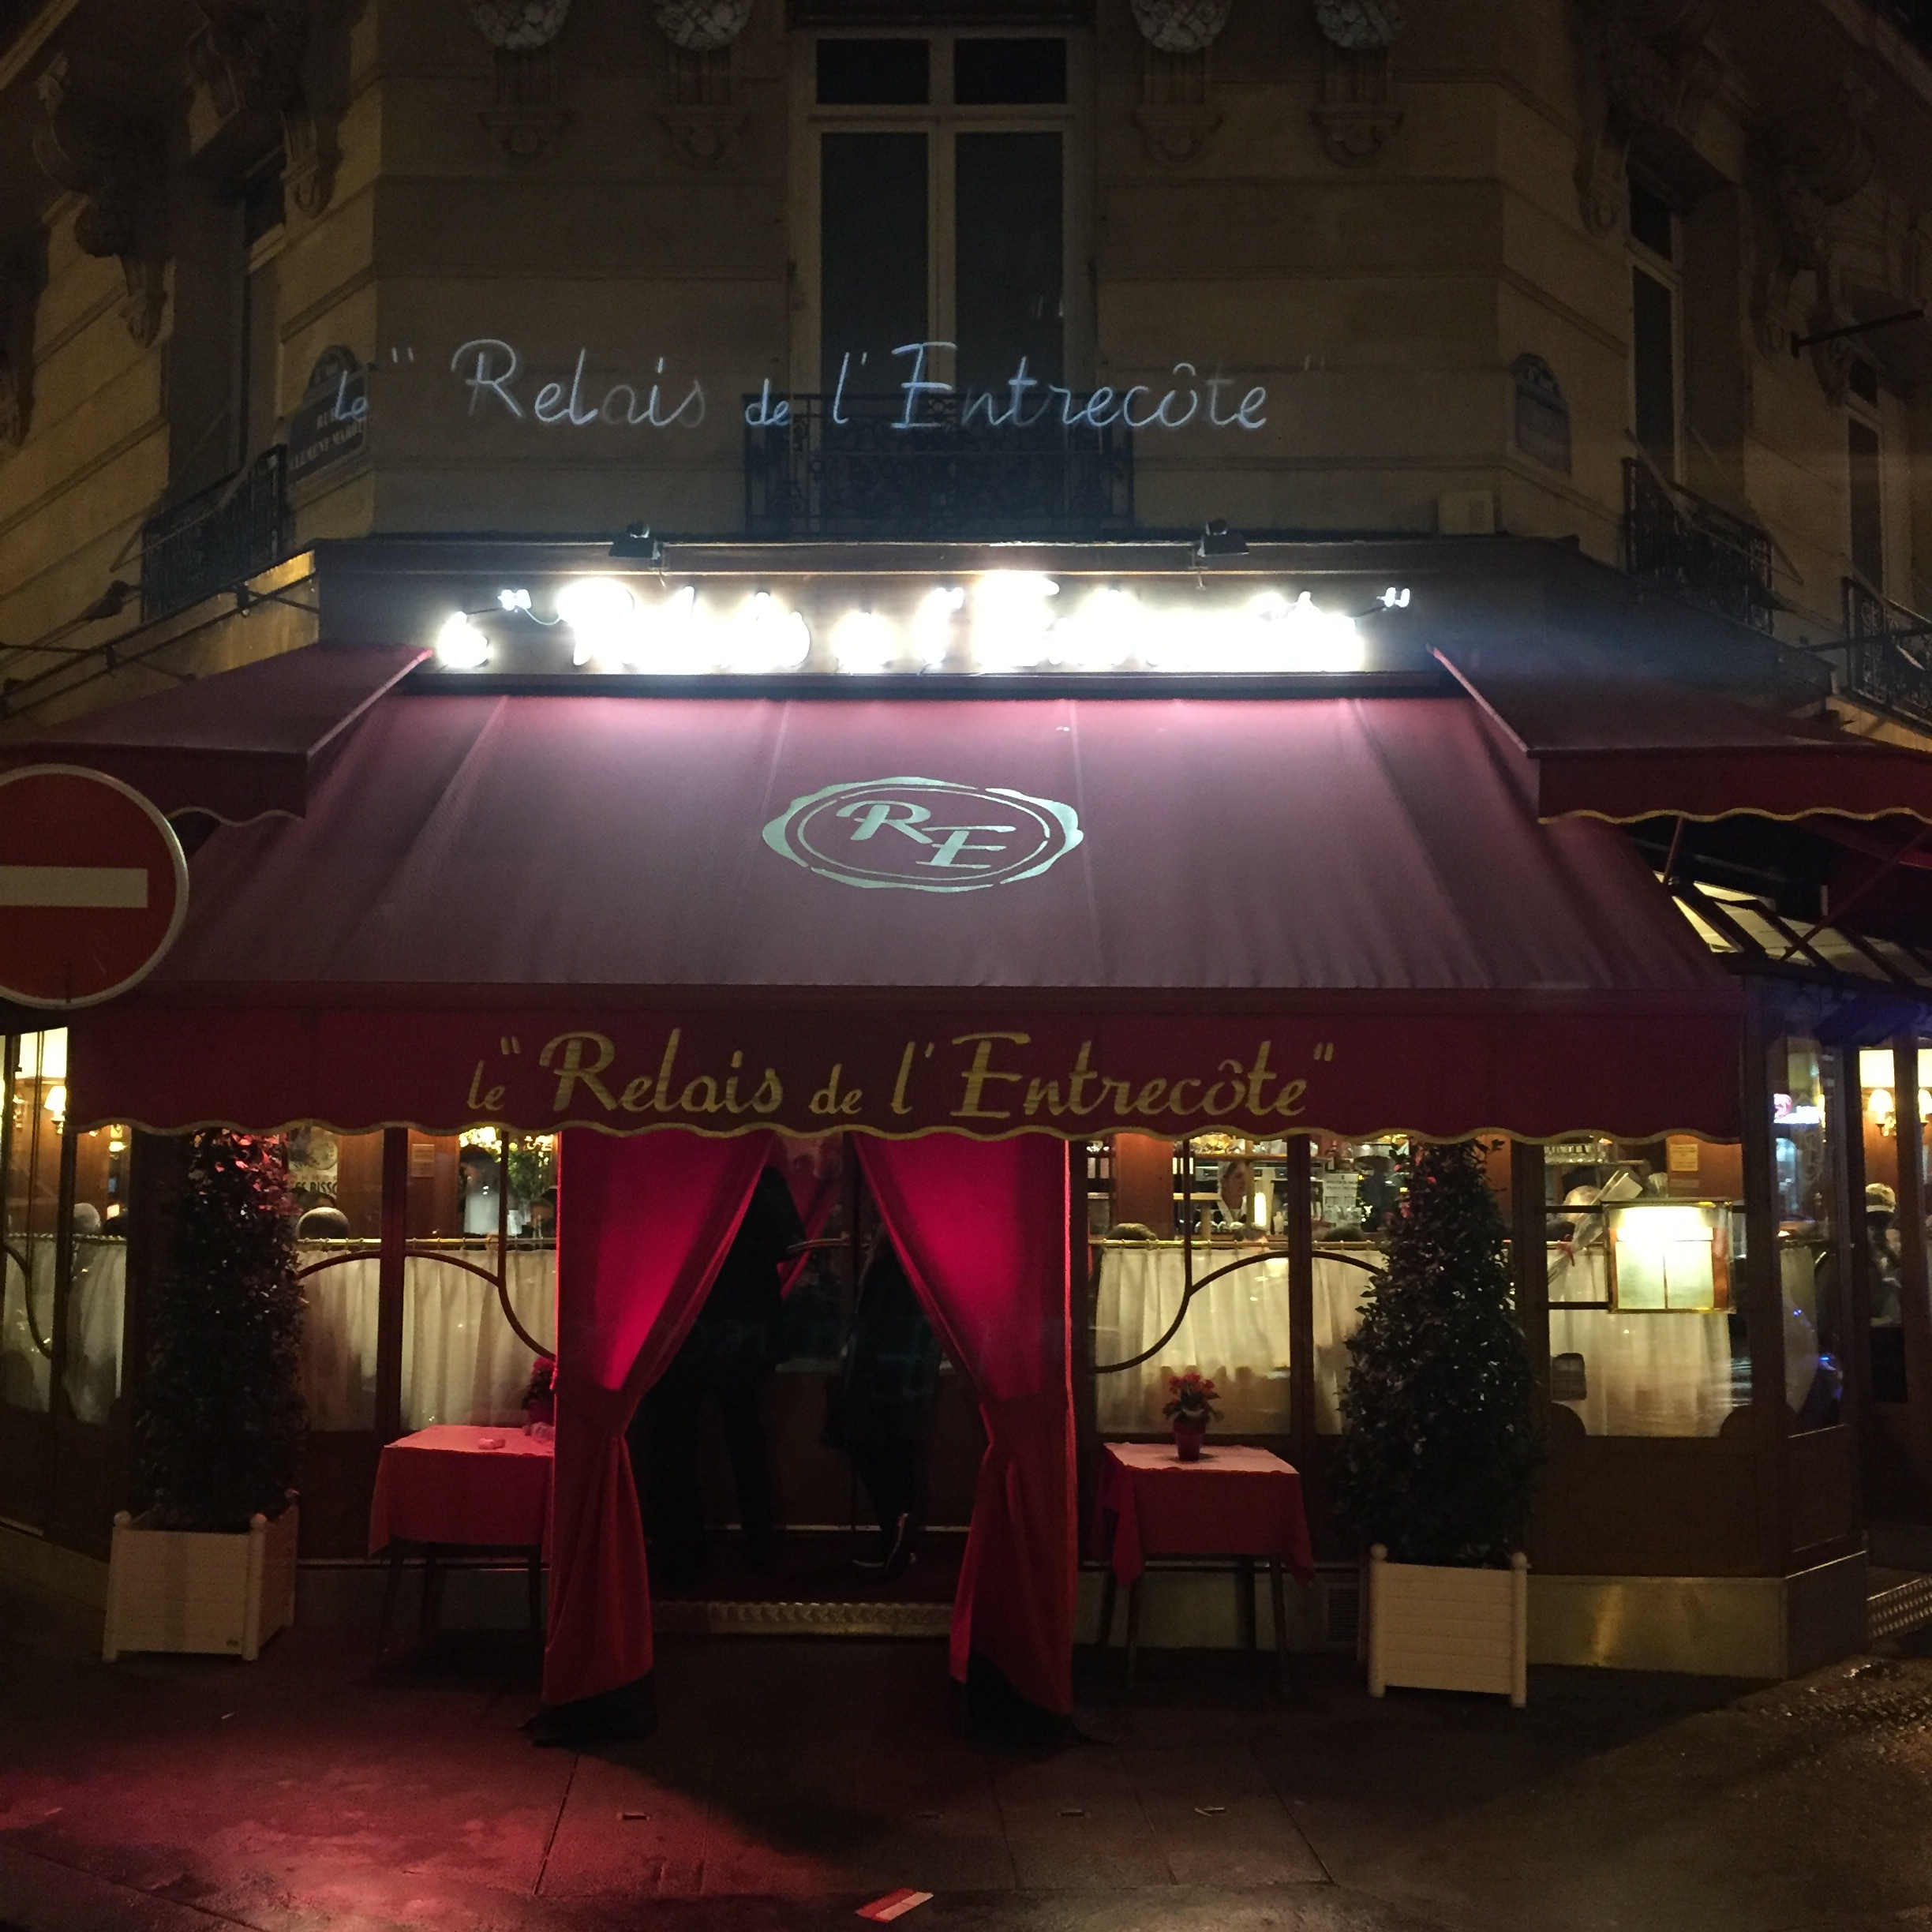 If you're ever in Paris, I would recommend dinning here at least once!